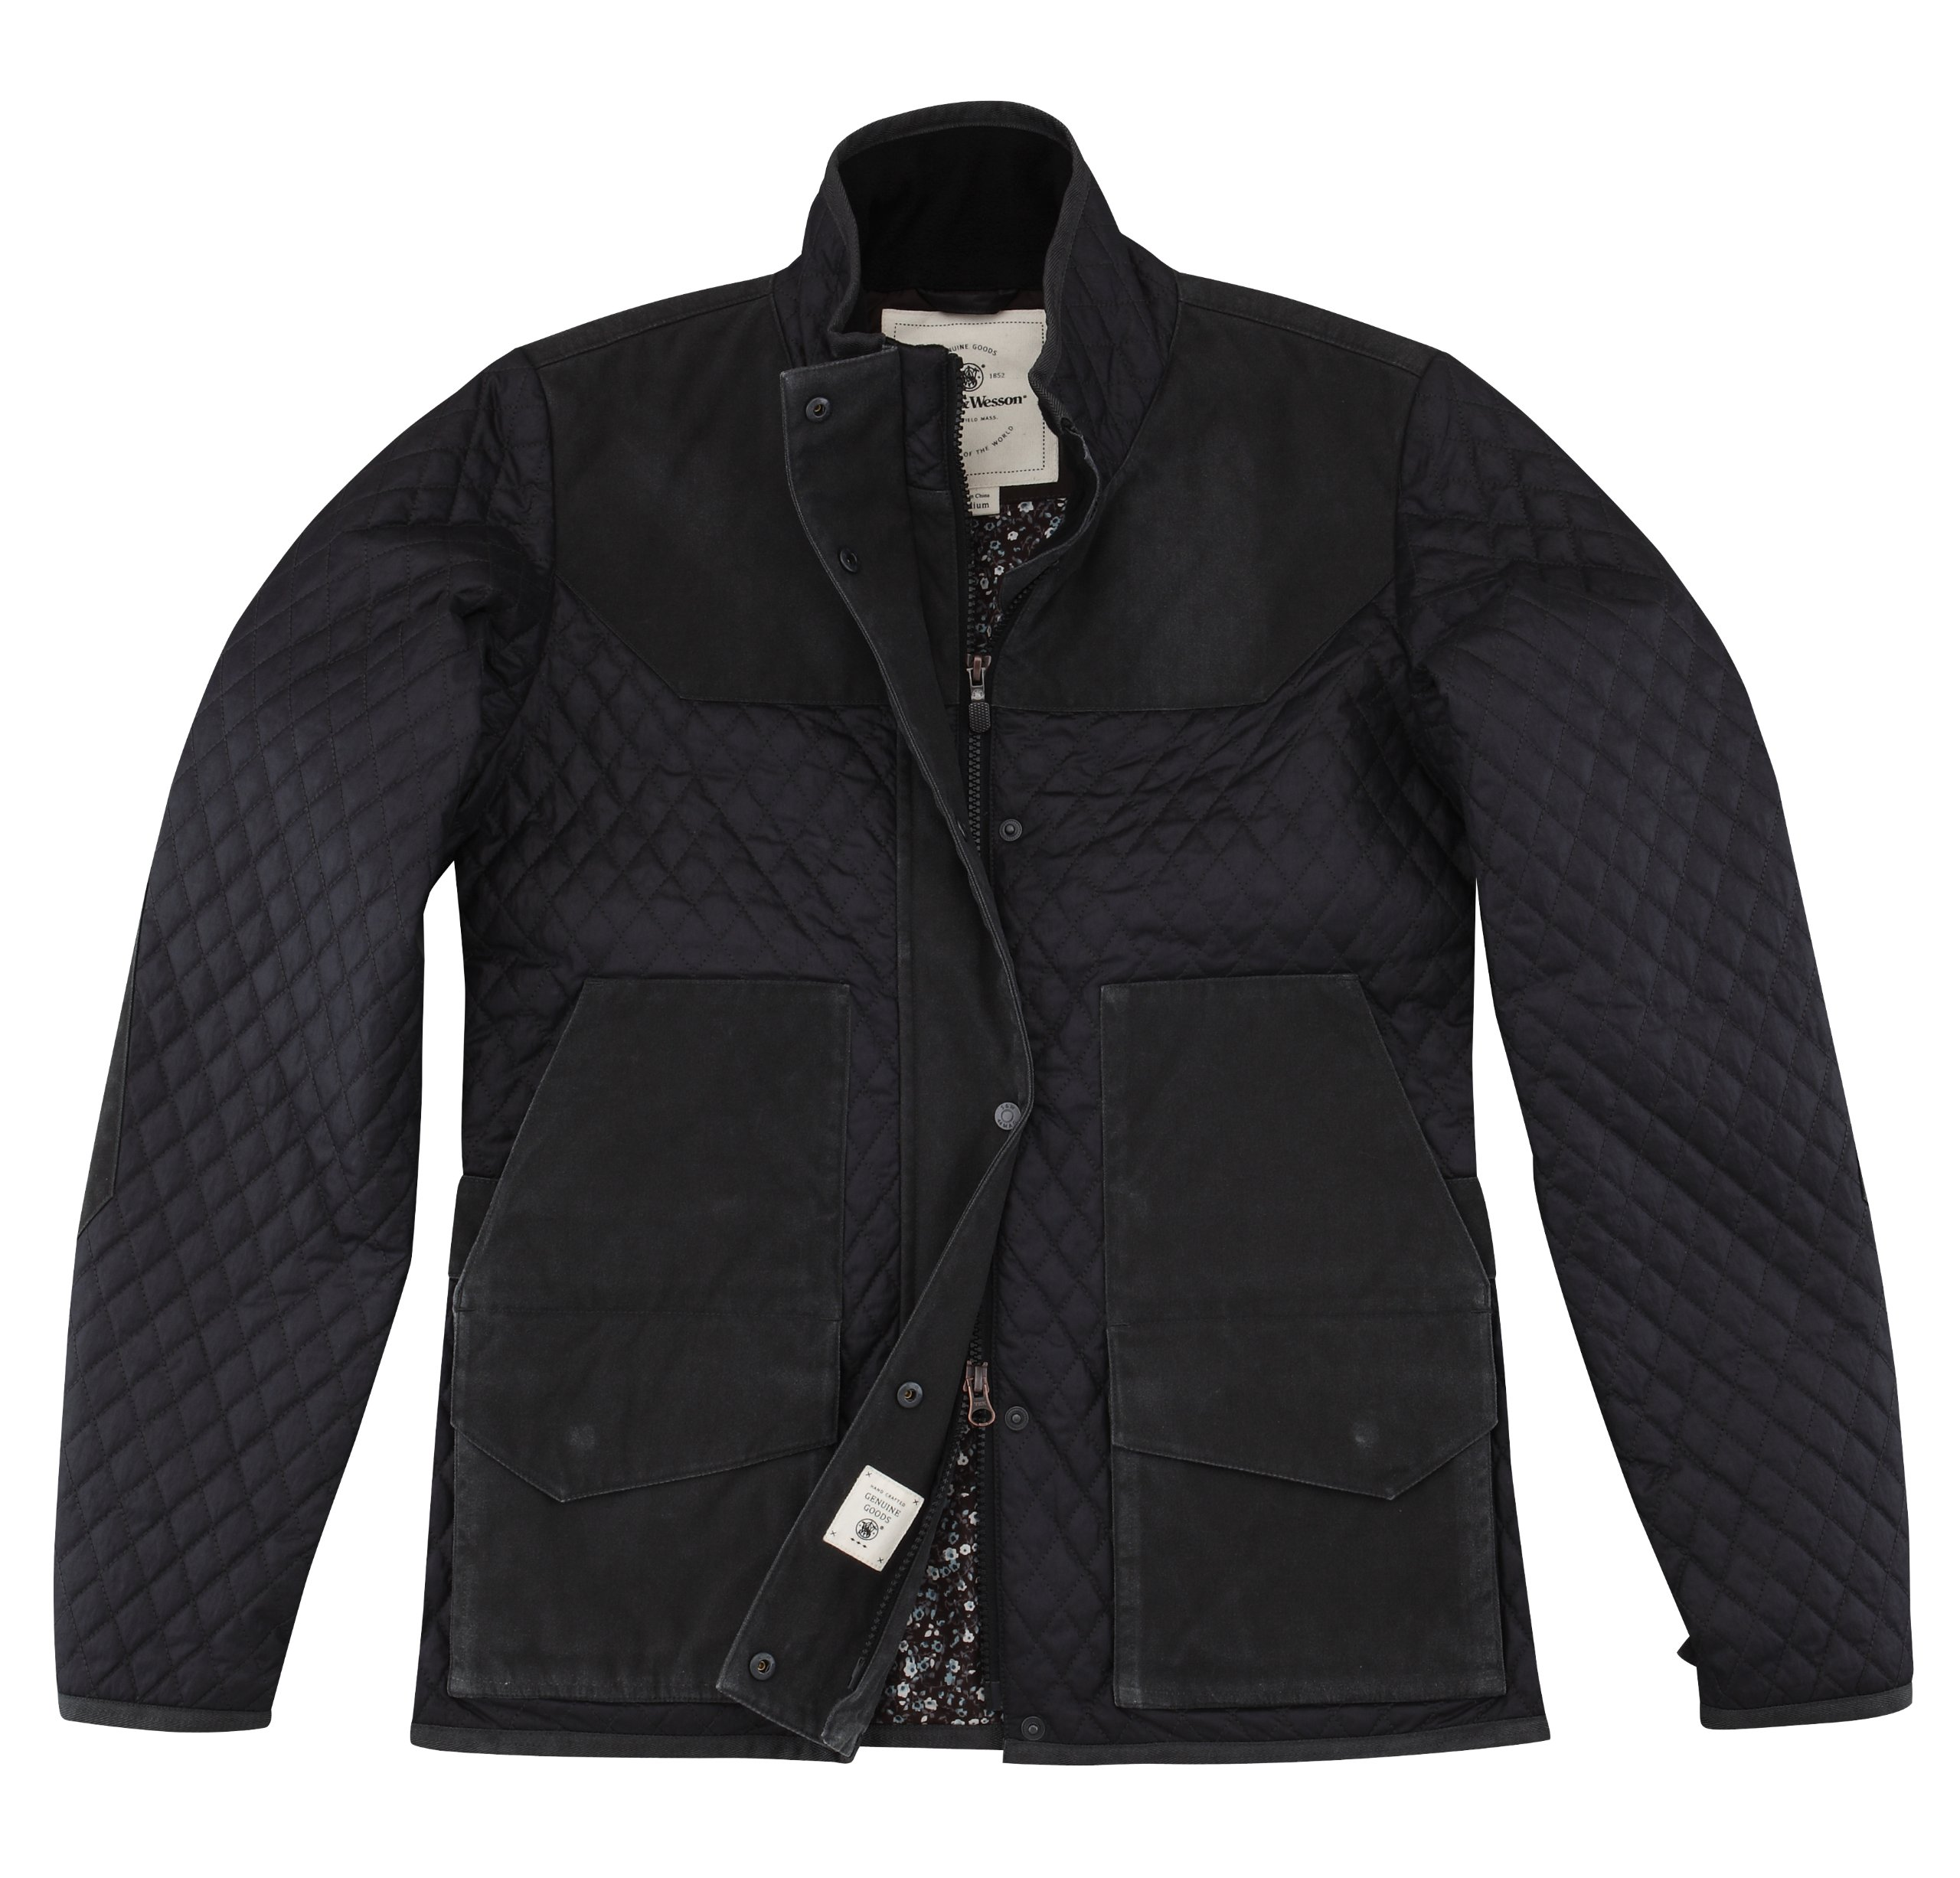 Smith &Wesson Women's Tracking Jacket Small Black by Smith & Wesson (Image #1)